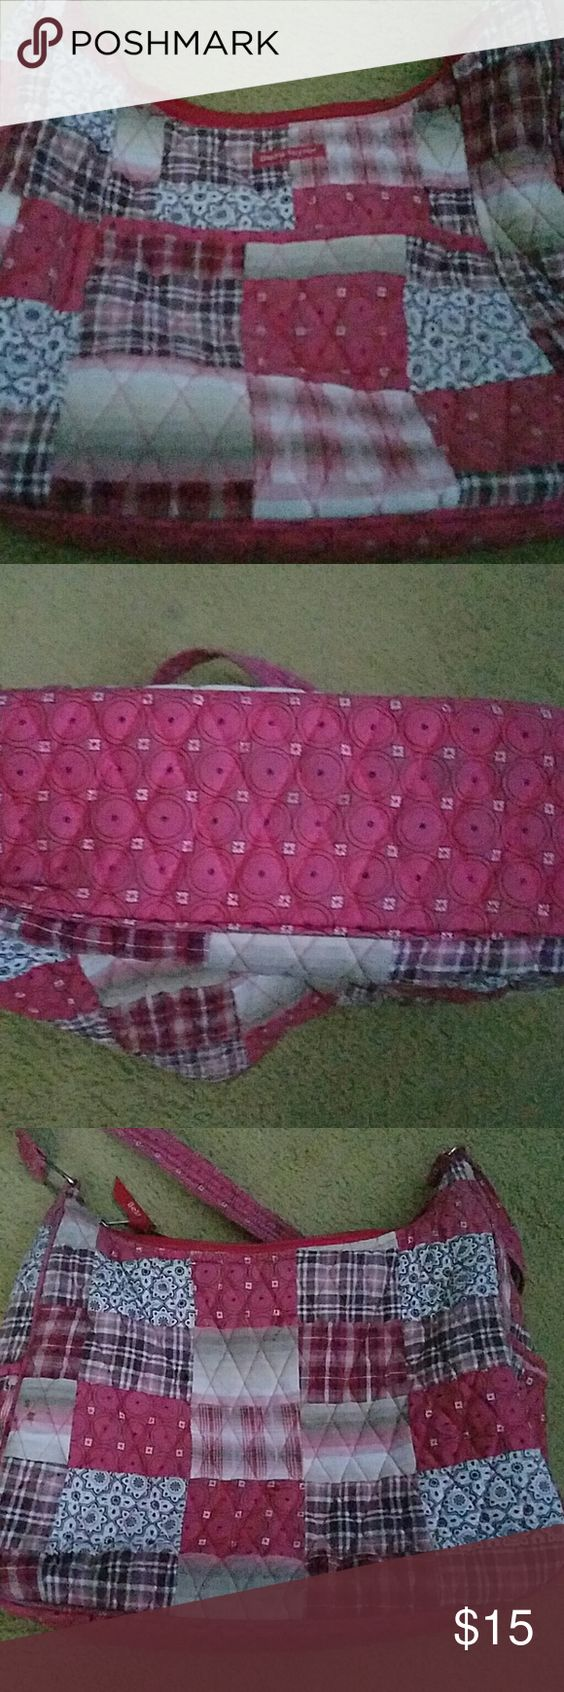 Bella Taylor patchwork purse Used Bella Taylor purse. Has some wear to it. Bella Taylor Bags Shoulder Bags